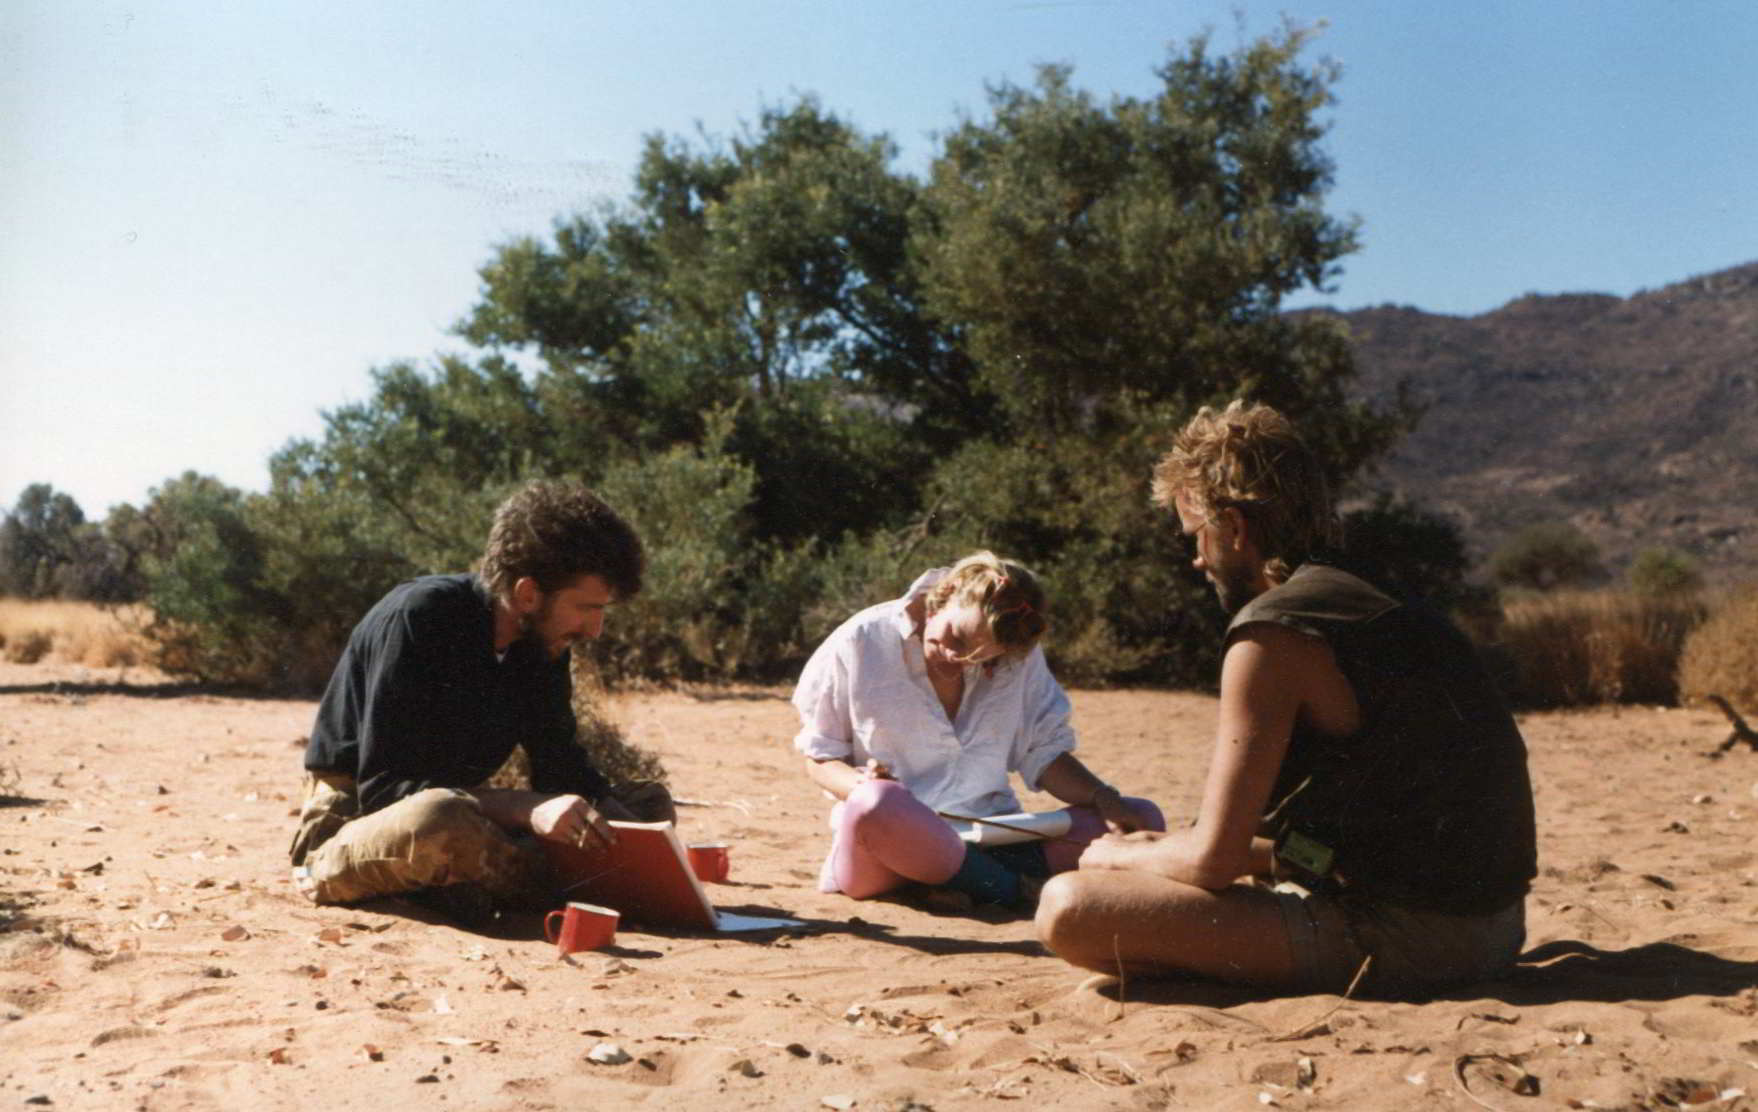 2 men and a woman at a working meeting sitting on desert ground